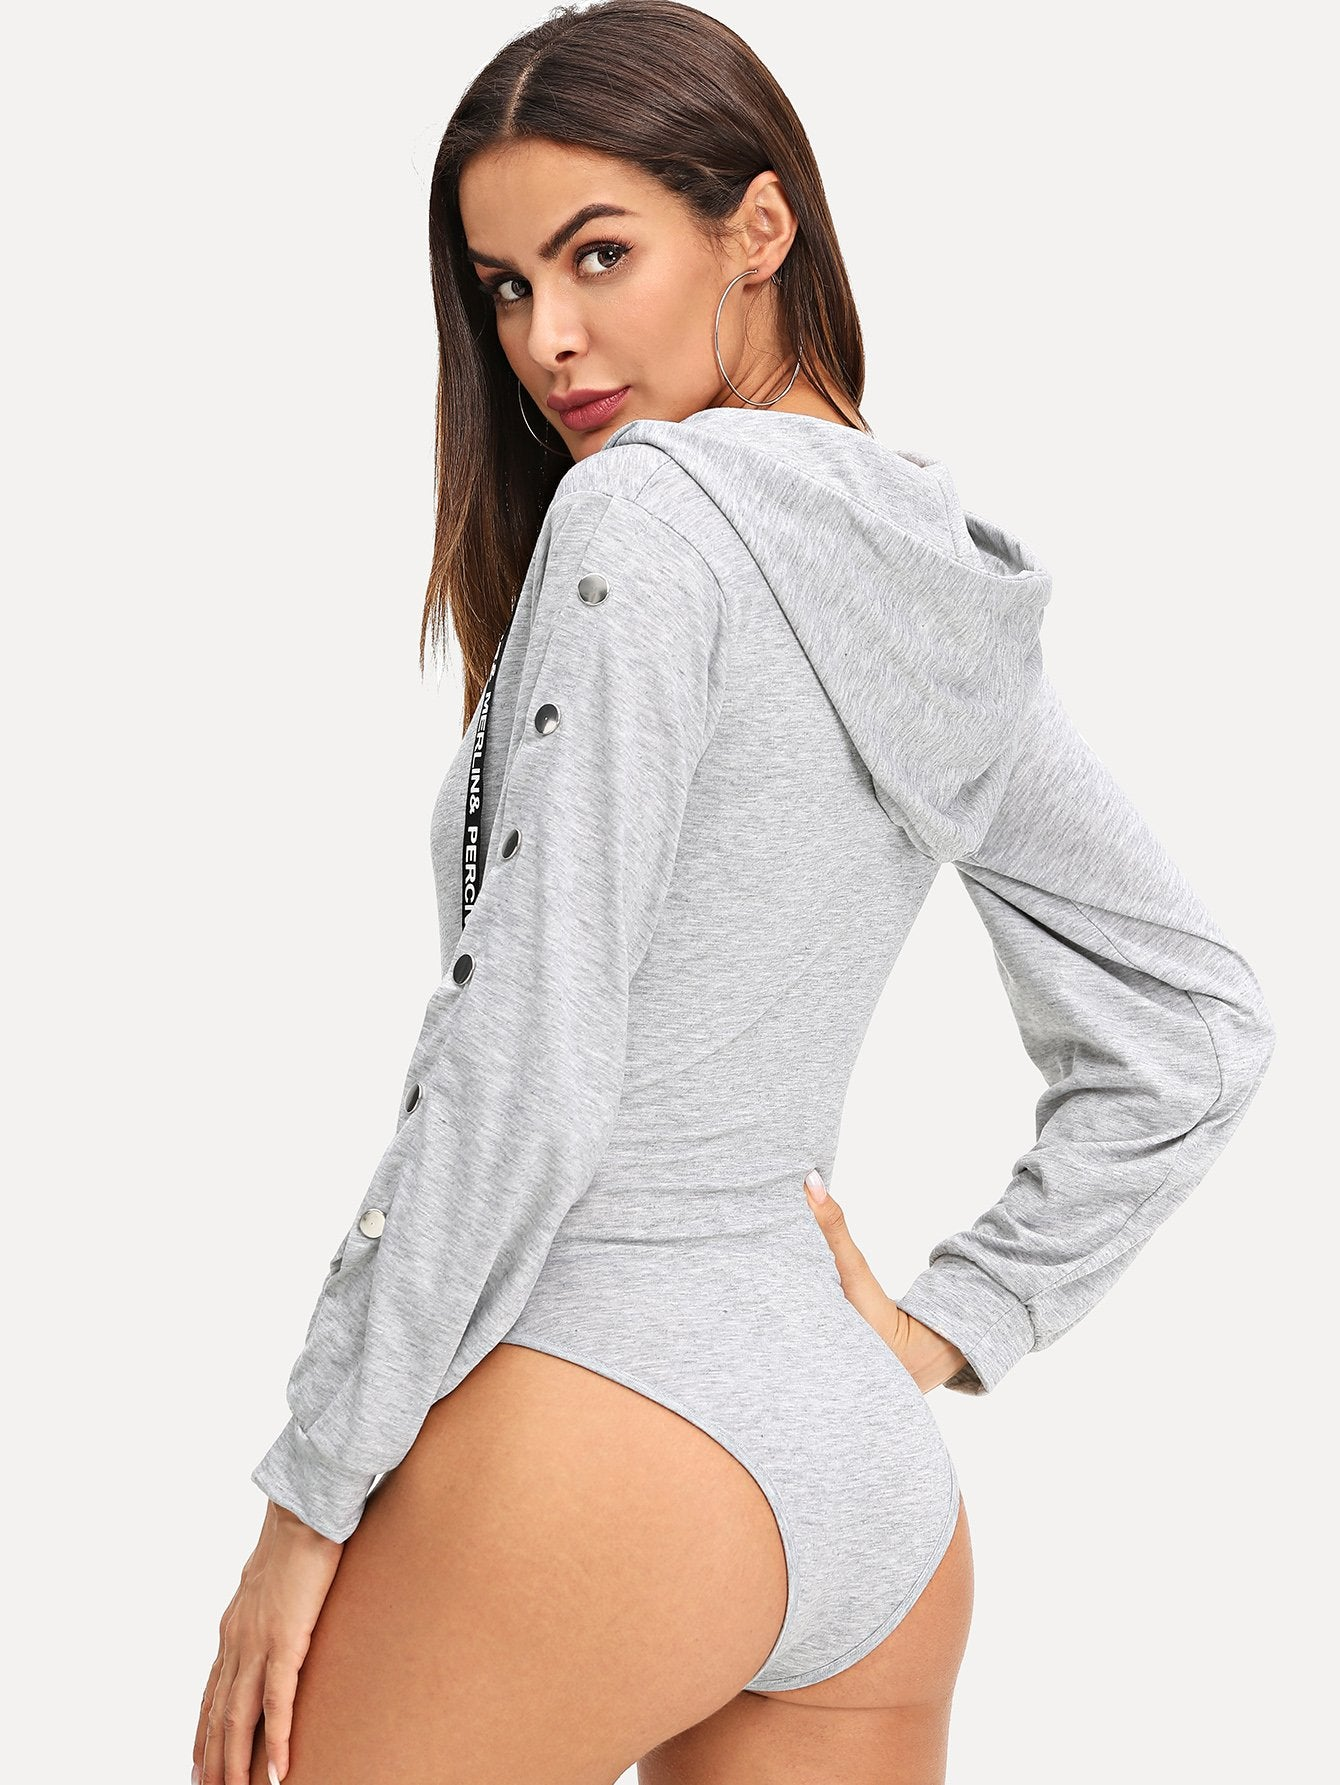 Drawstring Detail Hooded Bodysuit-Sunshine's Boutique & Gifts